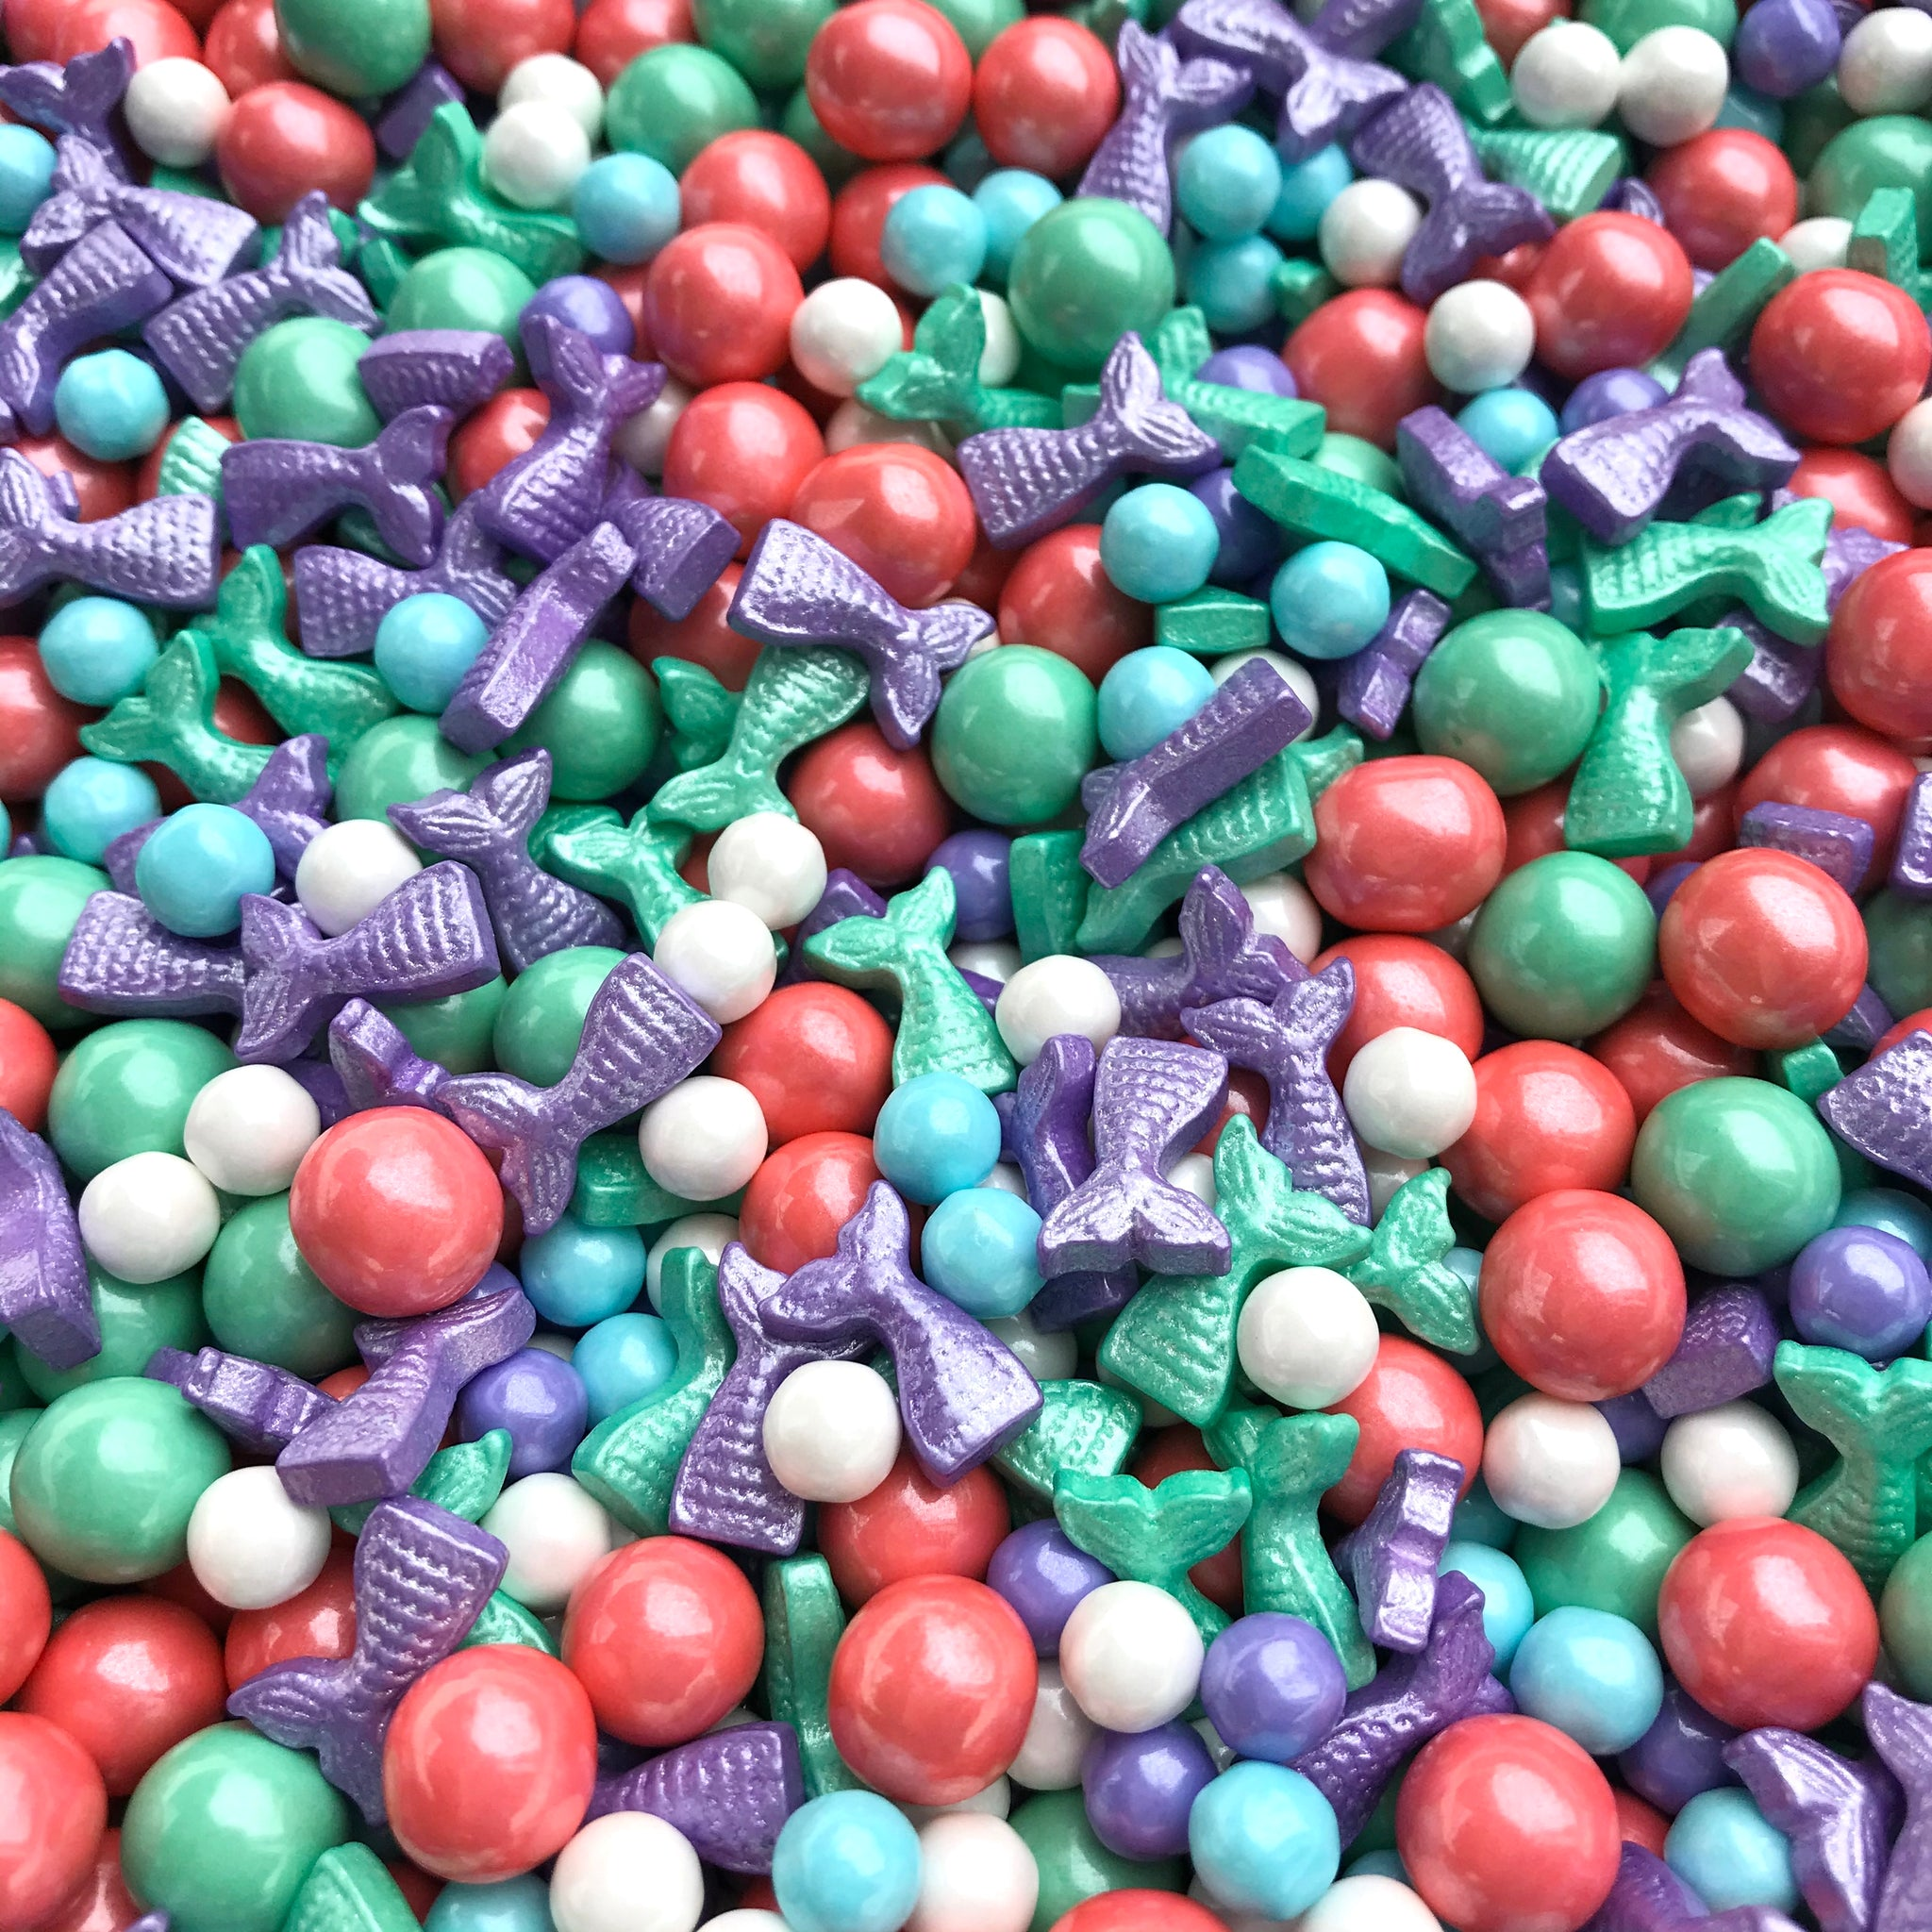 Sprinkles | Mermaid Sprinkles | Mermaid candy | Mermaids | Candy | Mermaid candy | Cupcake sprinkles | Baking | Manvscakes